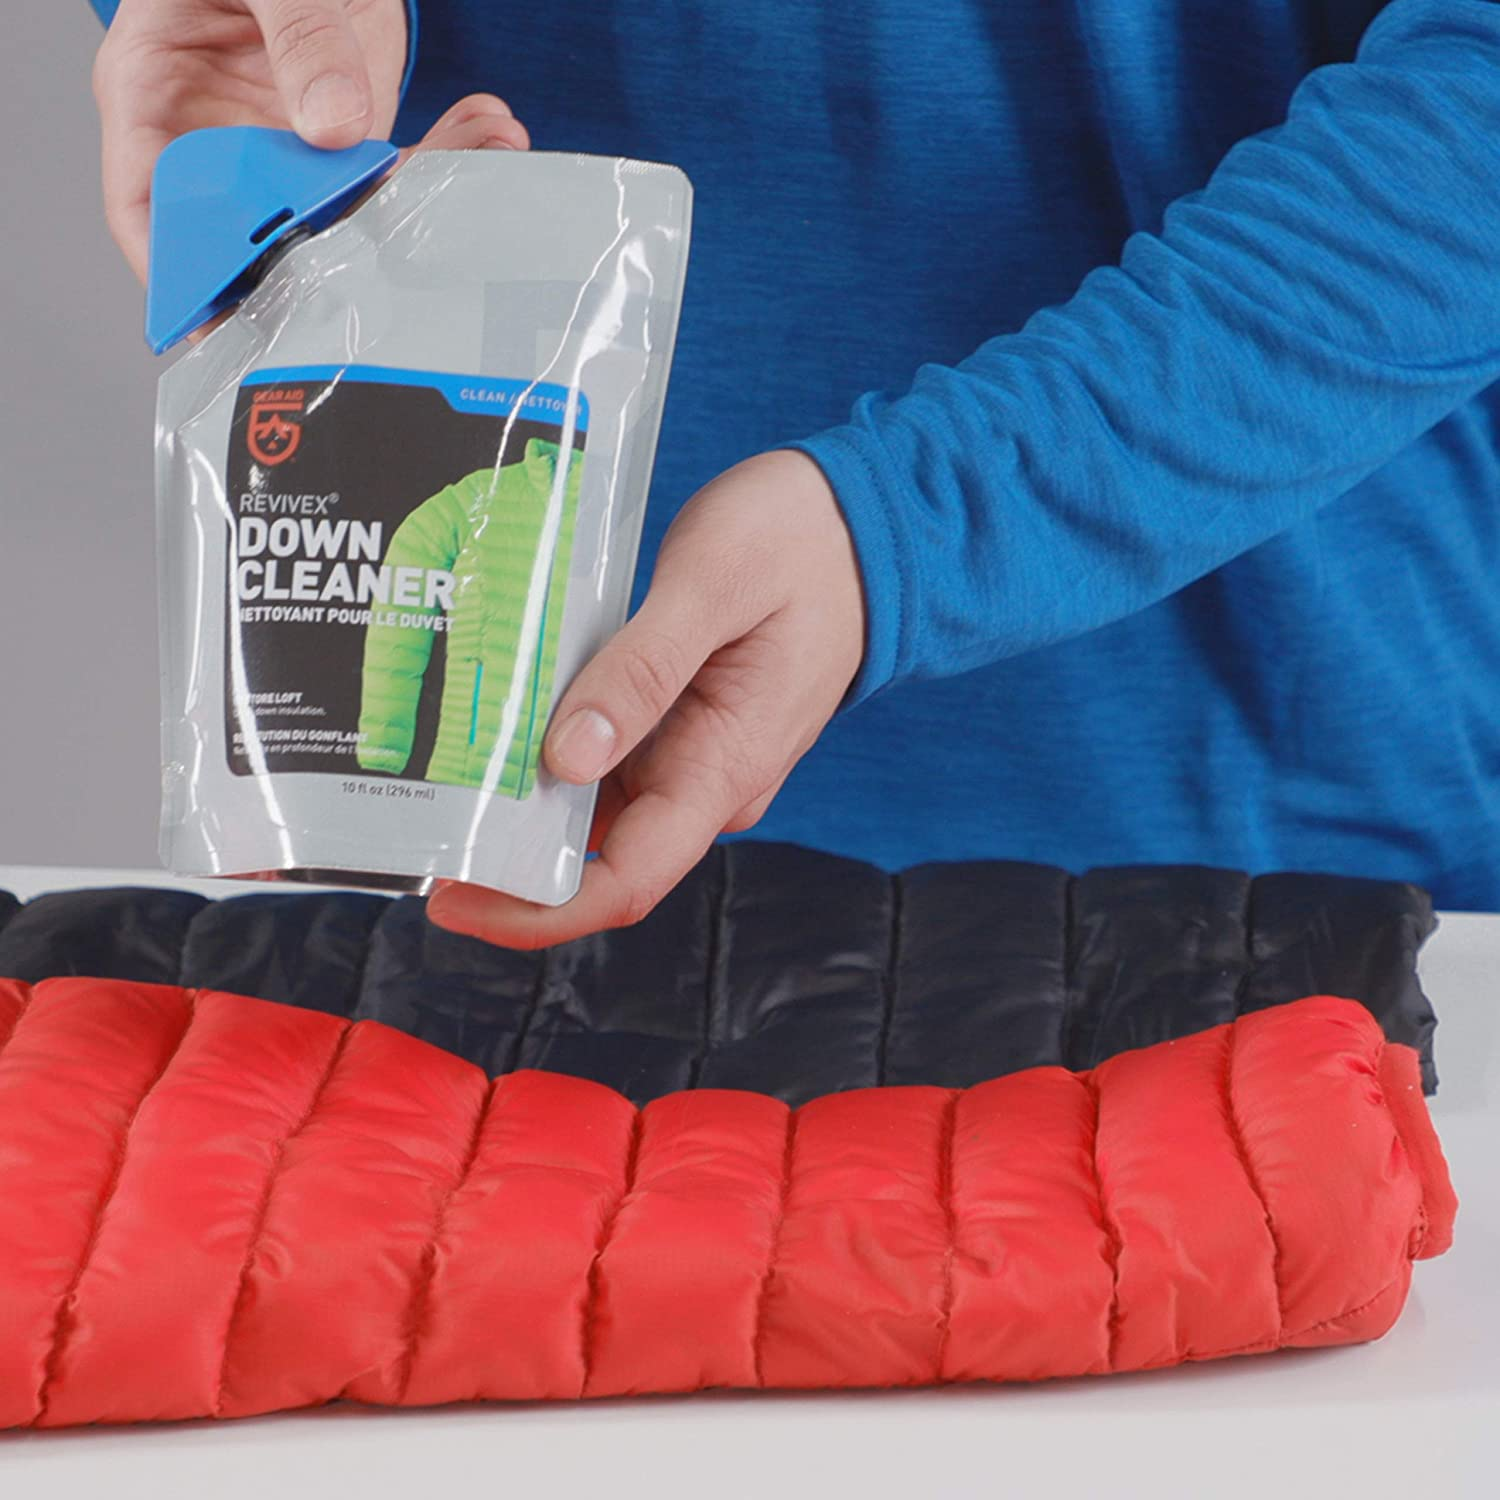 Gear Aid Revivex Down Cleaner and Wash for Jackets and Sleeping Bags